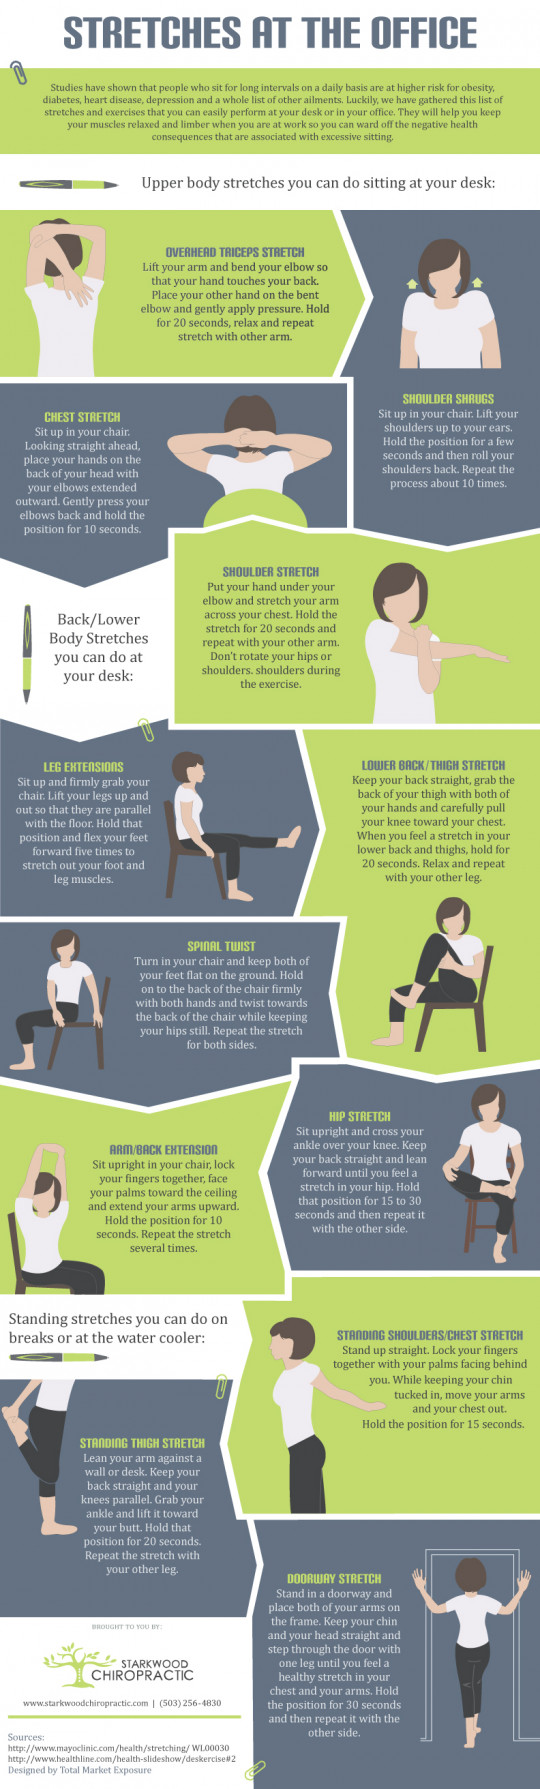 Portland Chiropractor Tips for Stretches at Work